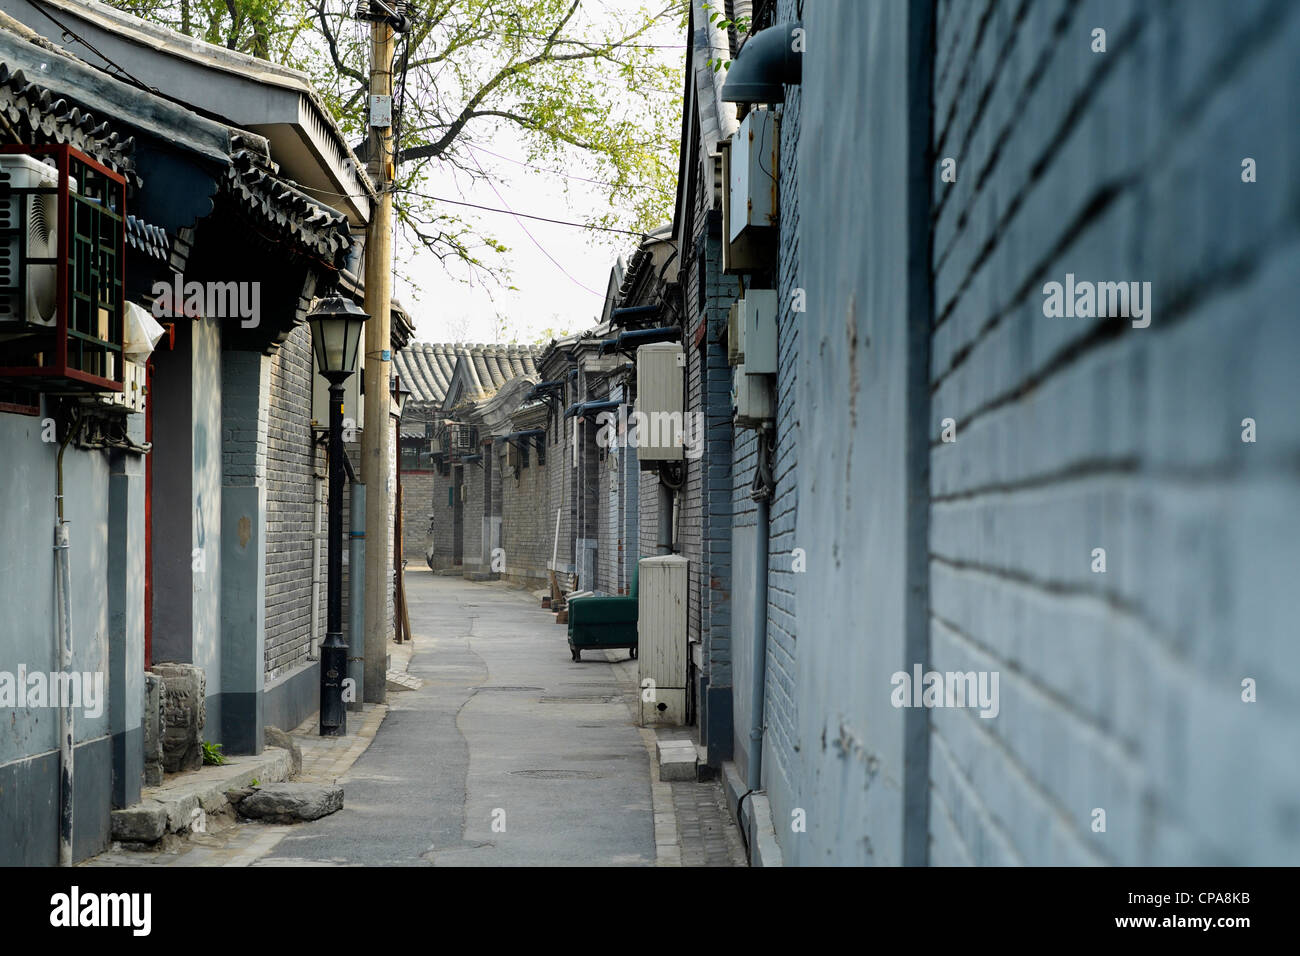 View along traditional historic old lane or hutong in Beijing China - Stock Image